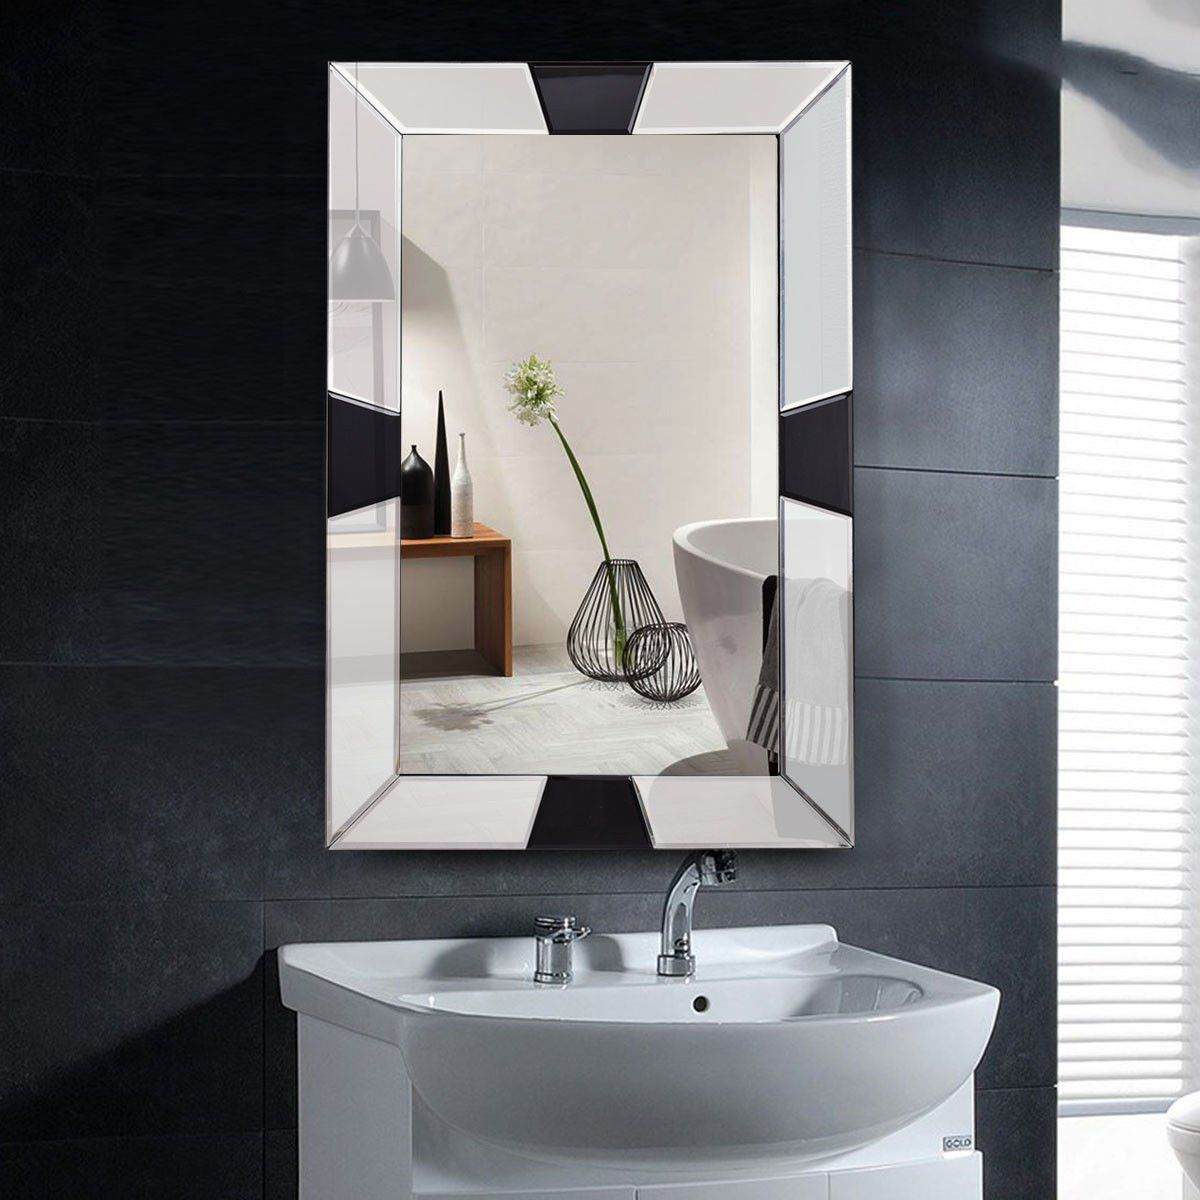 Tangkula 23 5 X 31 5 Wall Mirror Beveled Wood Frame Mirror Rectangle Bathroom Home Mirror Click Image To R Bathroom Mirror Glass Bathroom Wood Framed Mirror [ 1200 x 1200 Pixel ]